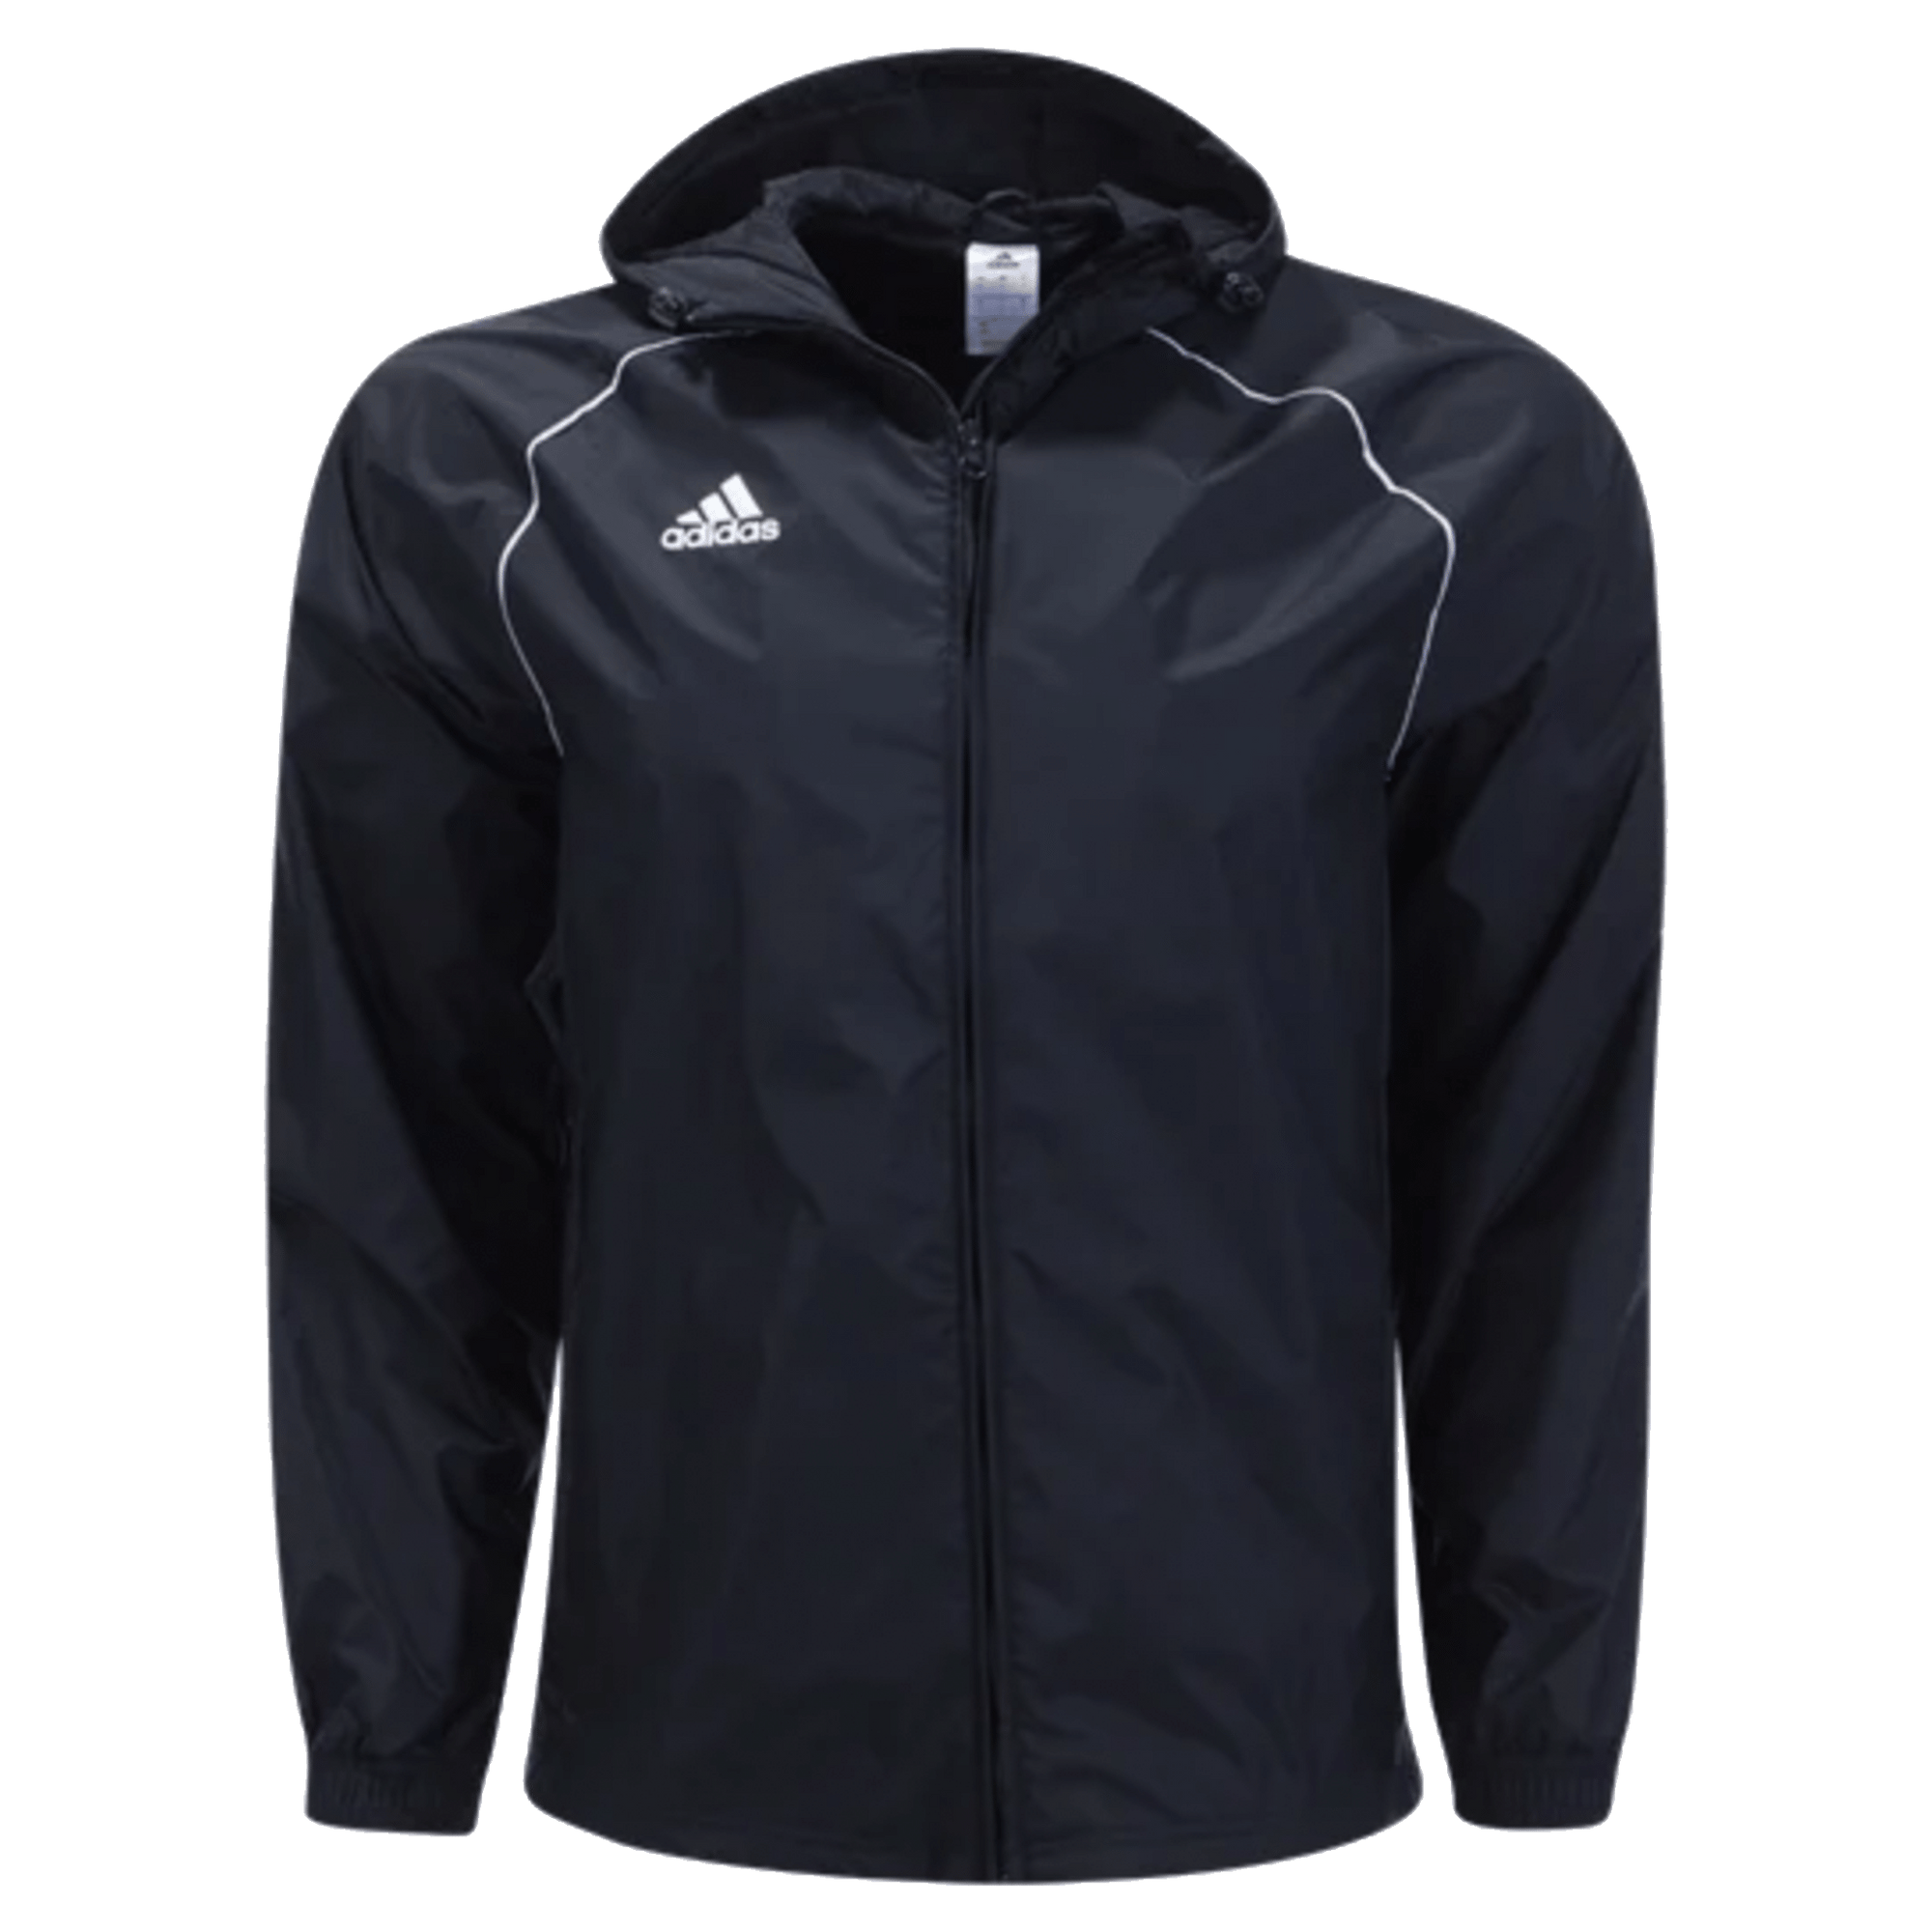 adidas Black Core Rain Jacket